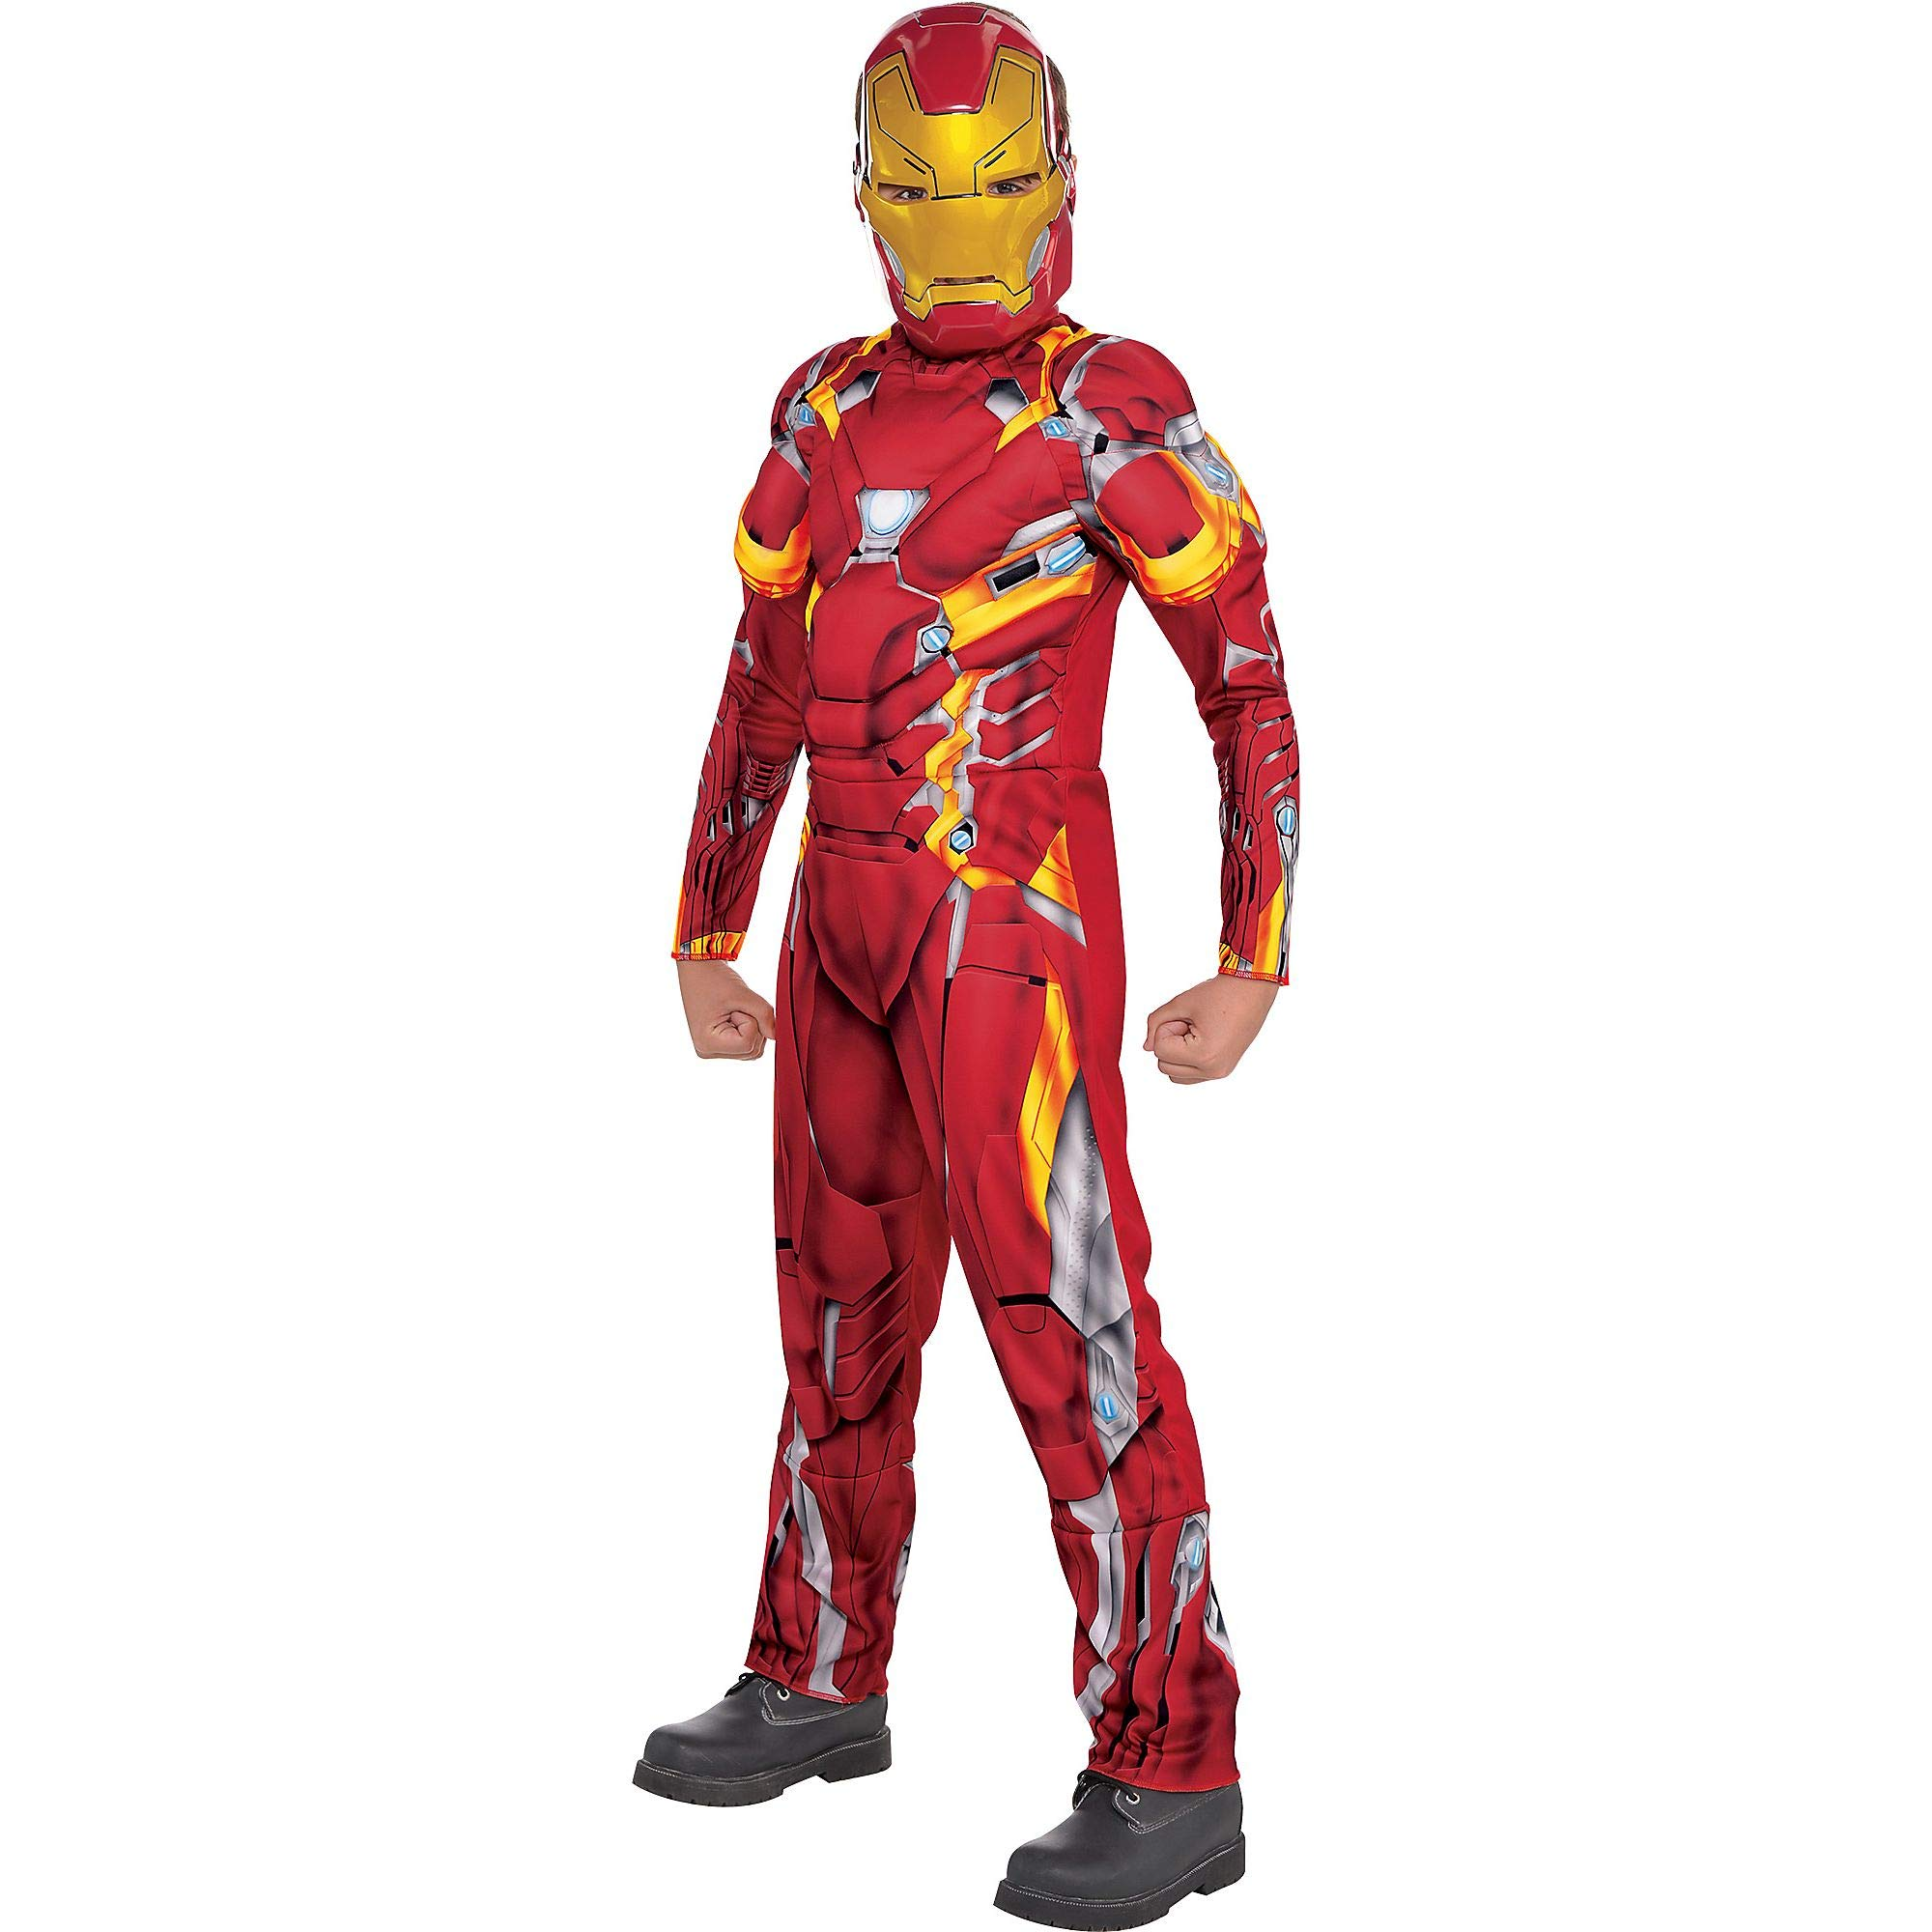 Costumes USA Captain America: Civil War Iron Man Muscle Costume for Boys, Size Small, Includes a Jumpsuit and a Mask